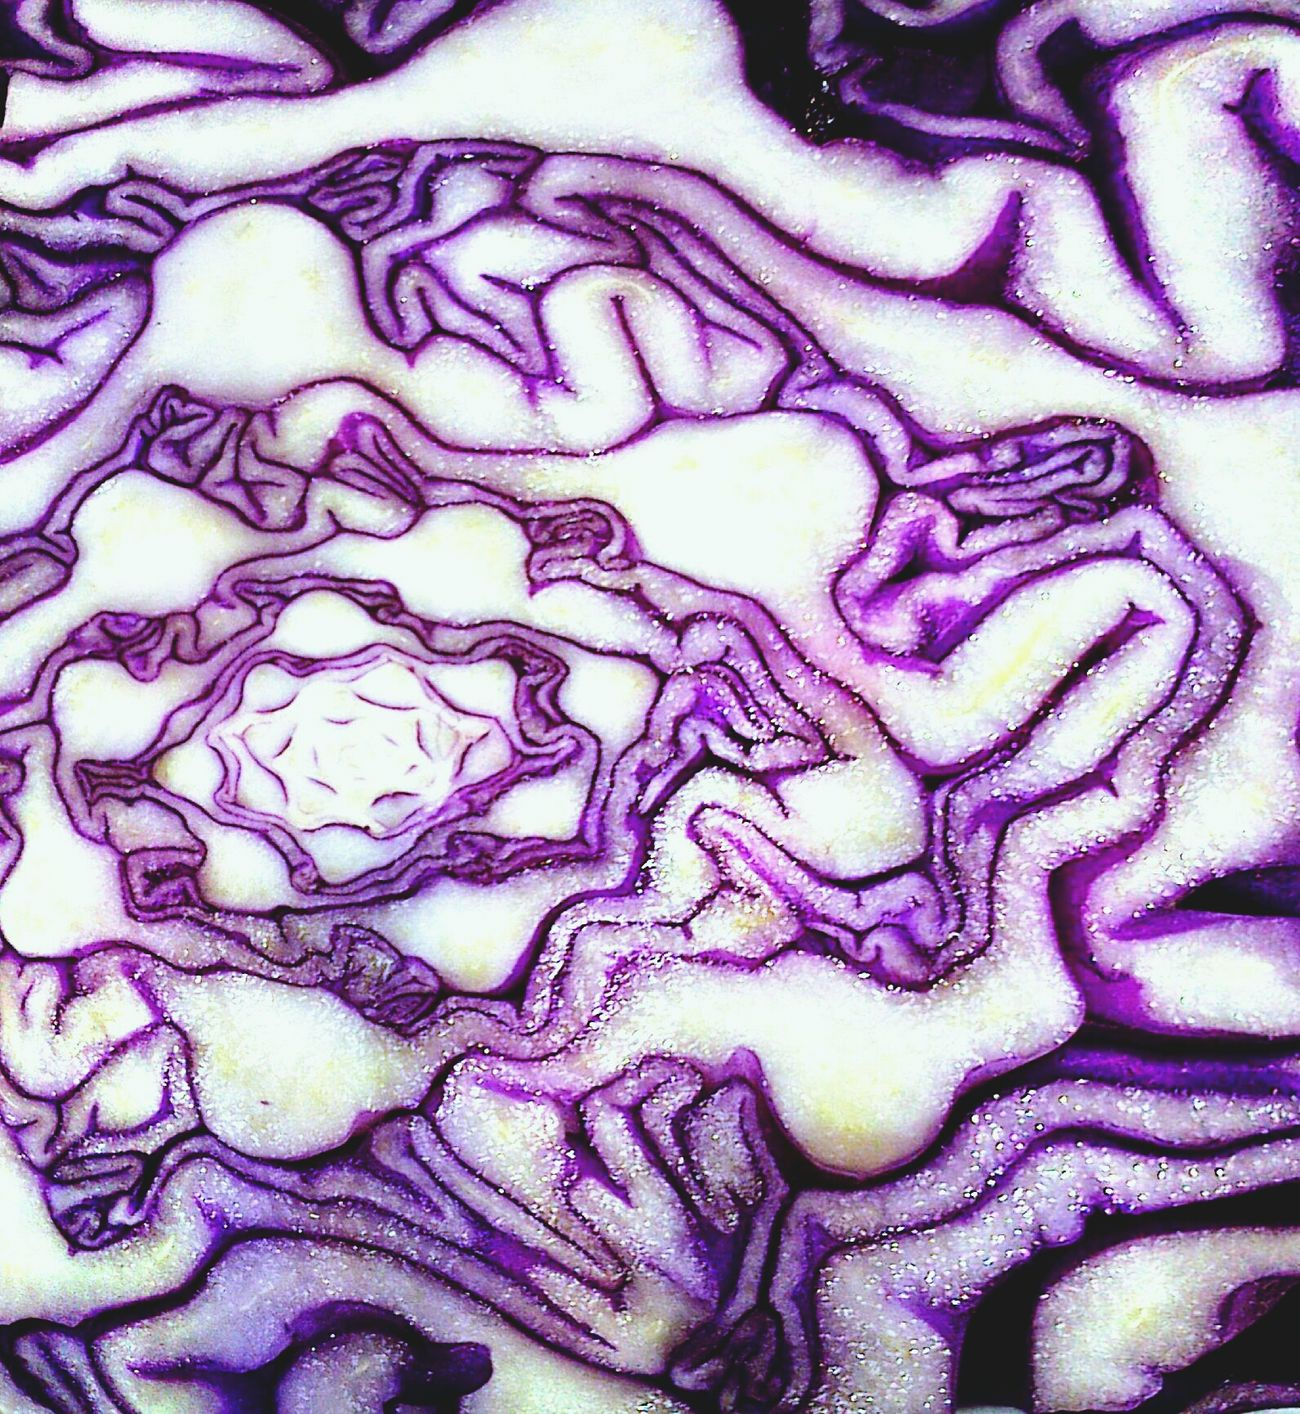 Textures And Surfaces Cabbage First Eyeem Photo Cabbage My Best Photo 2014 Brassica Oleracea Rubra